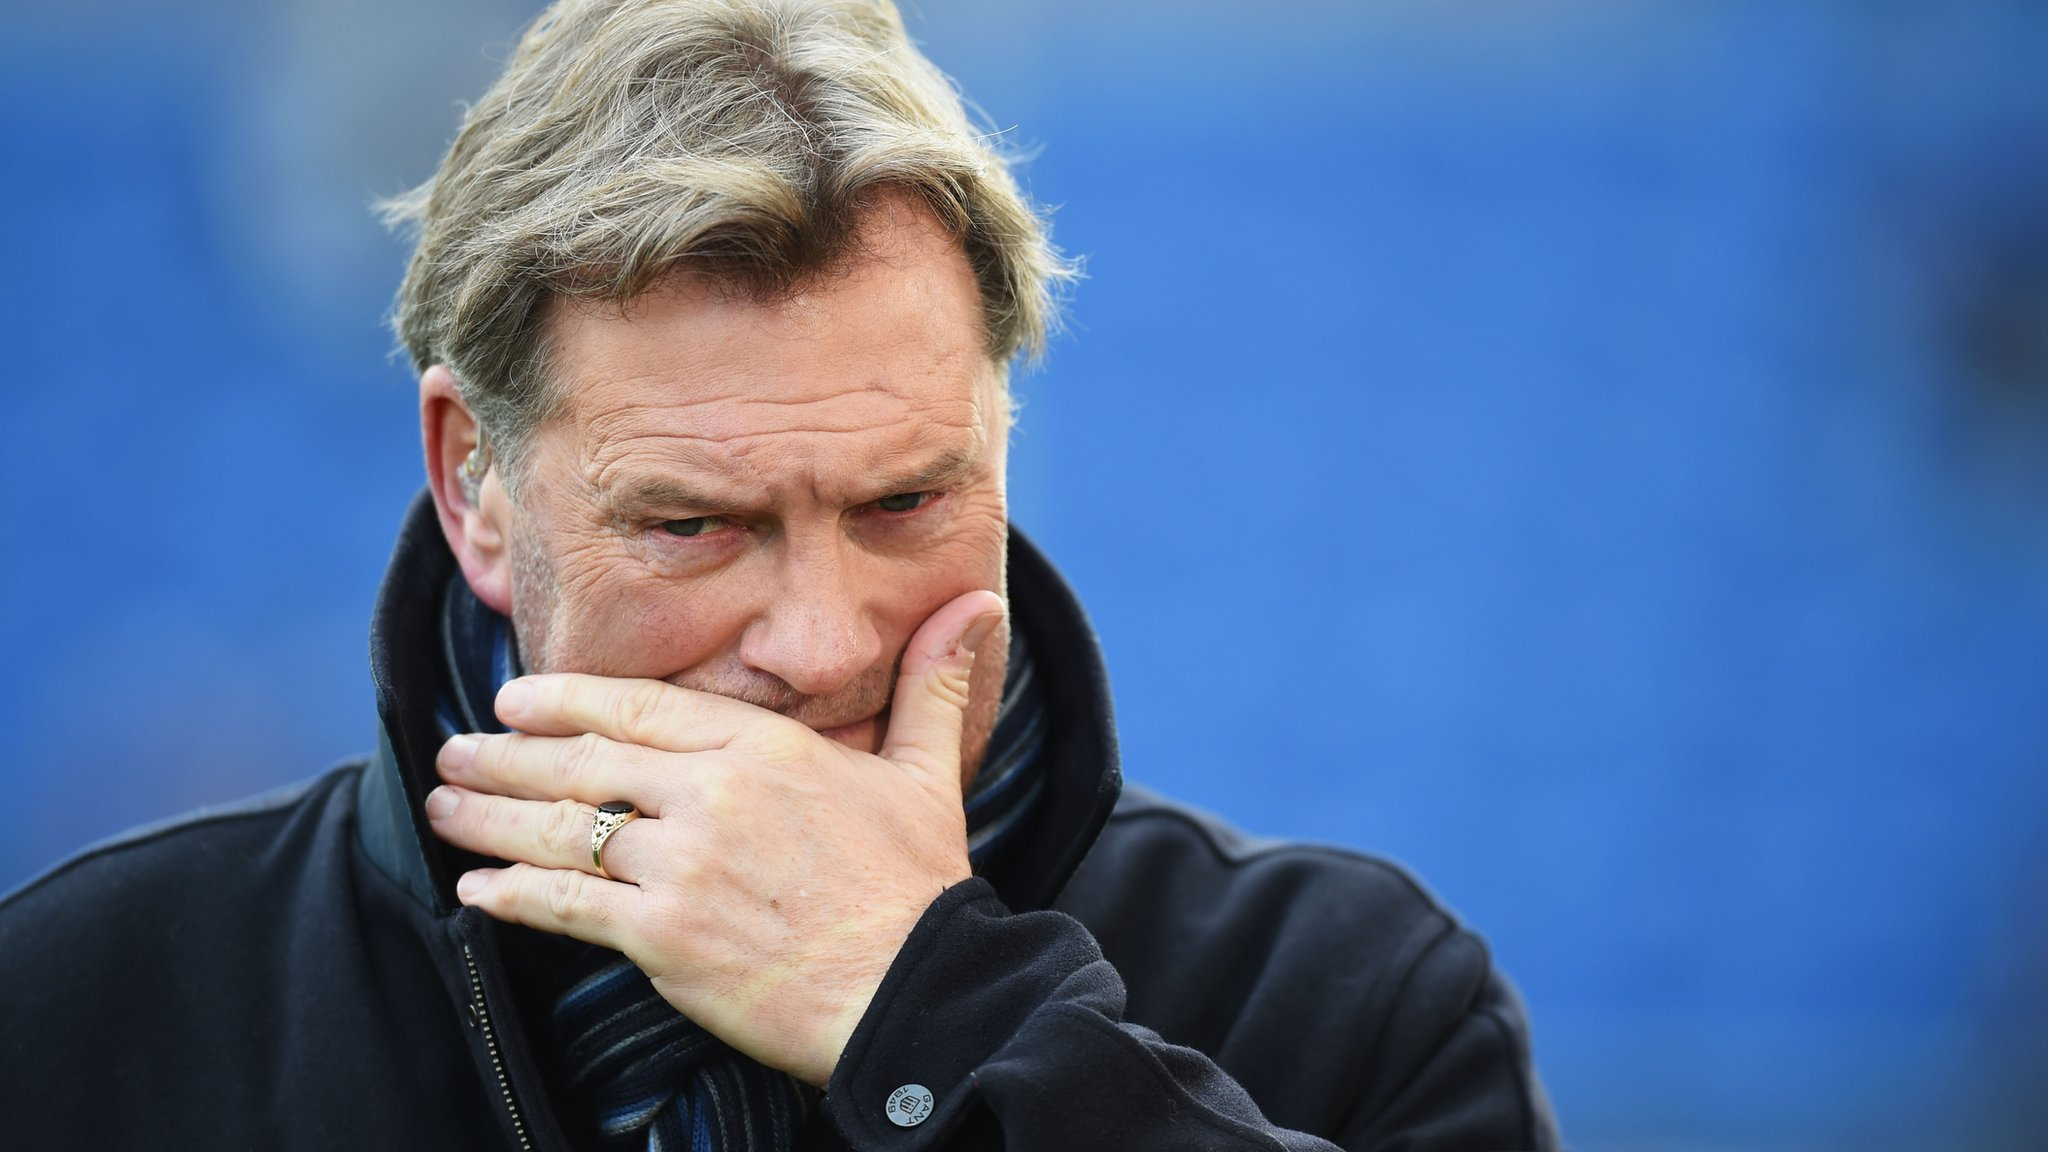 Glenn Hoddle says he is 'lucky' to be alive after cardiac arrest